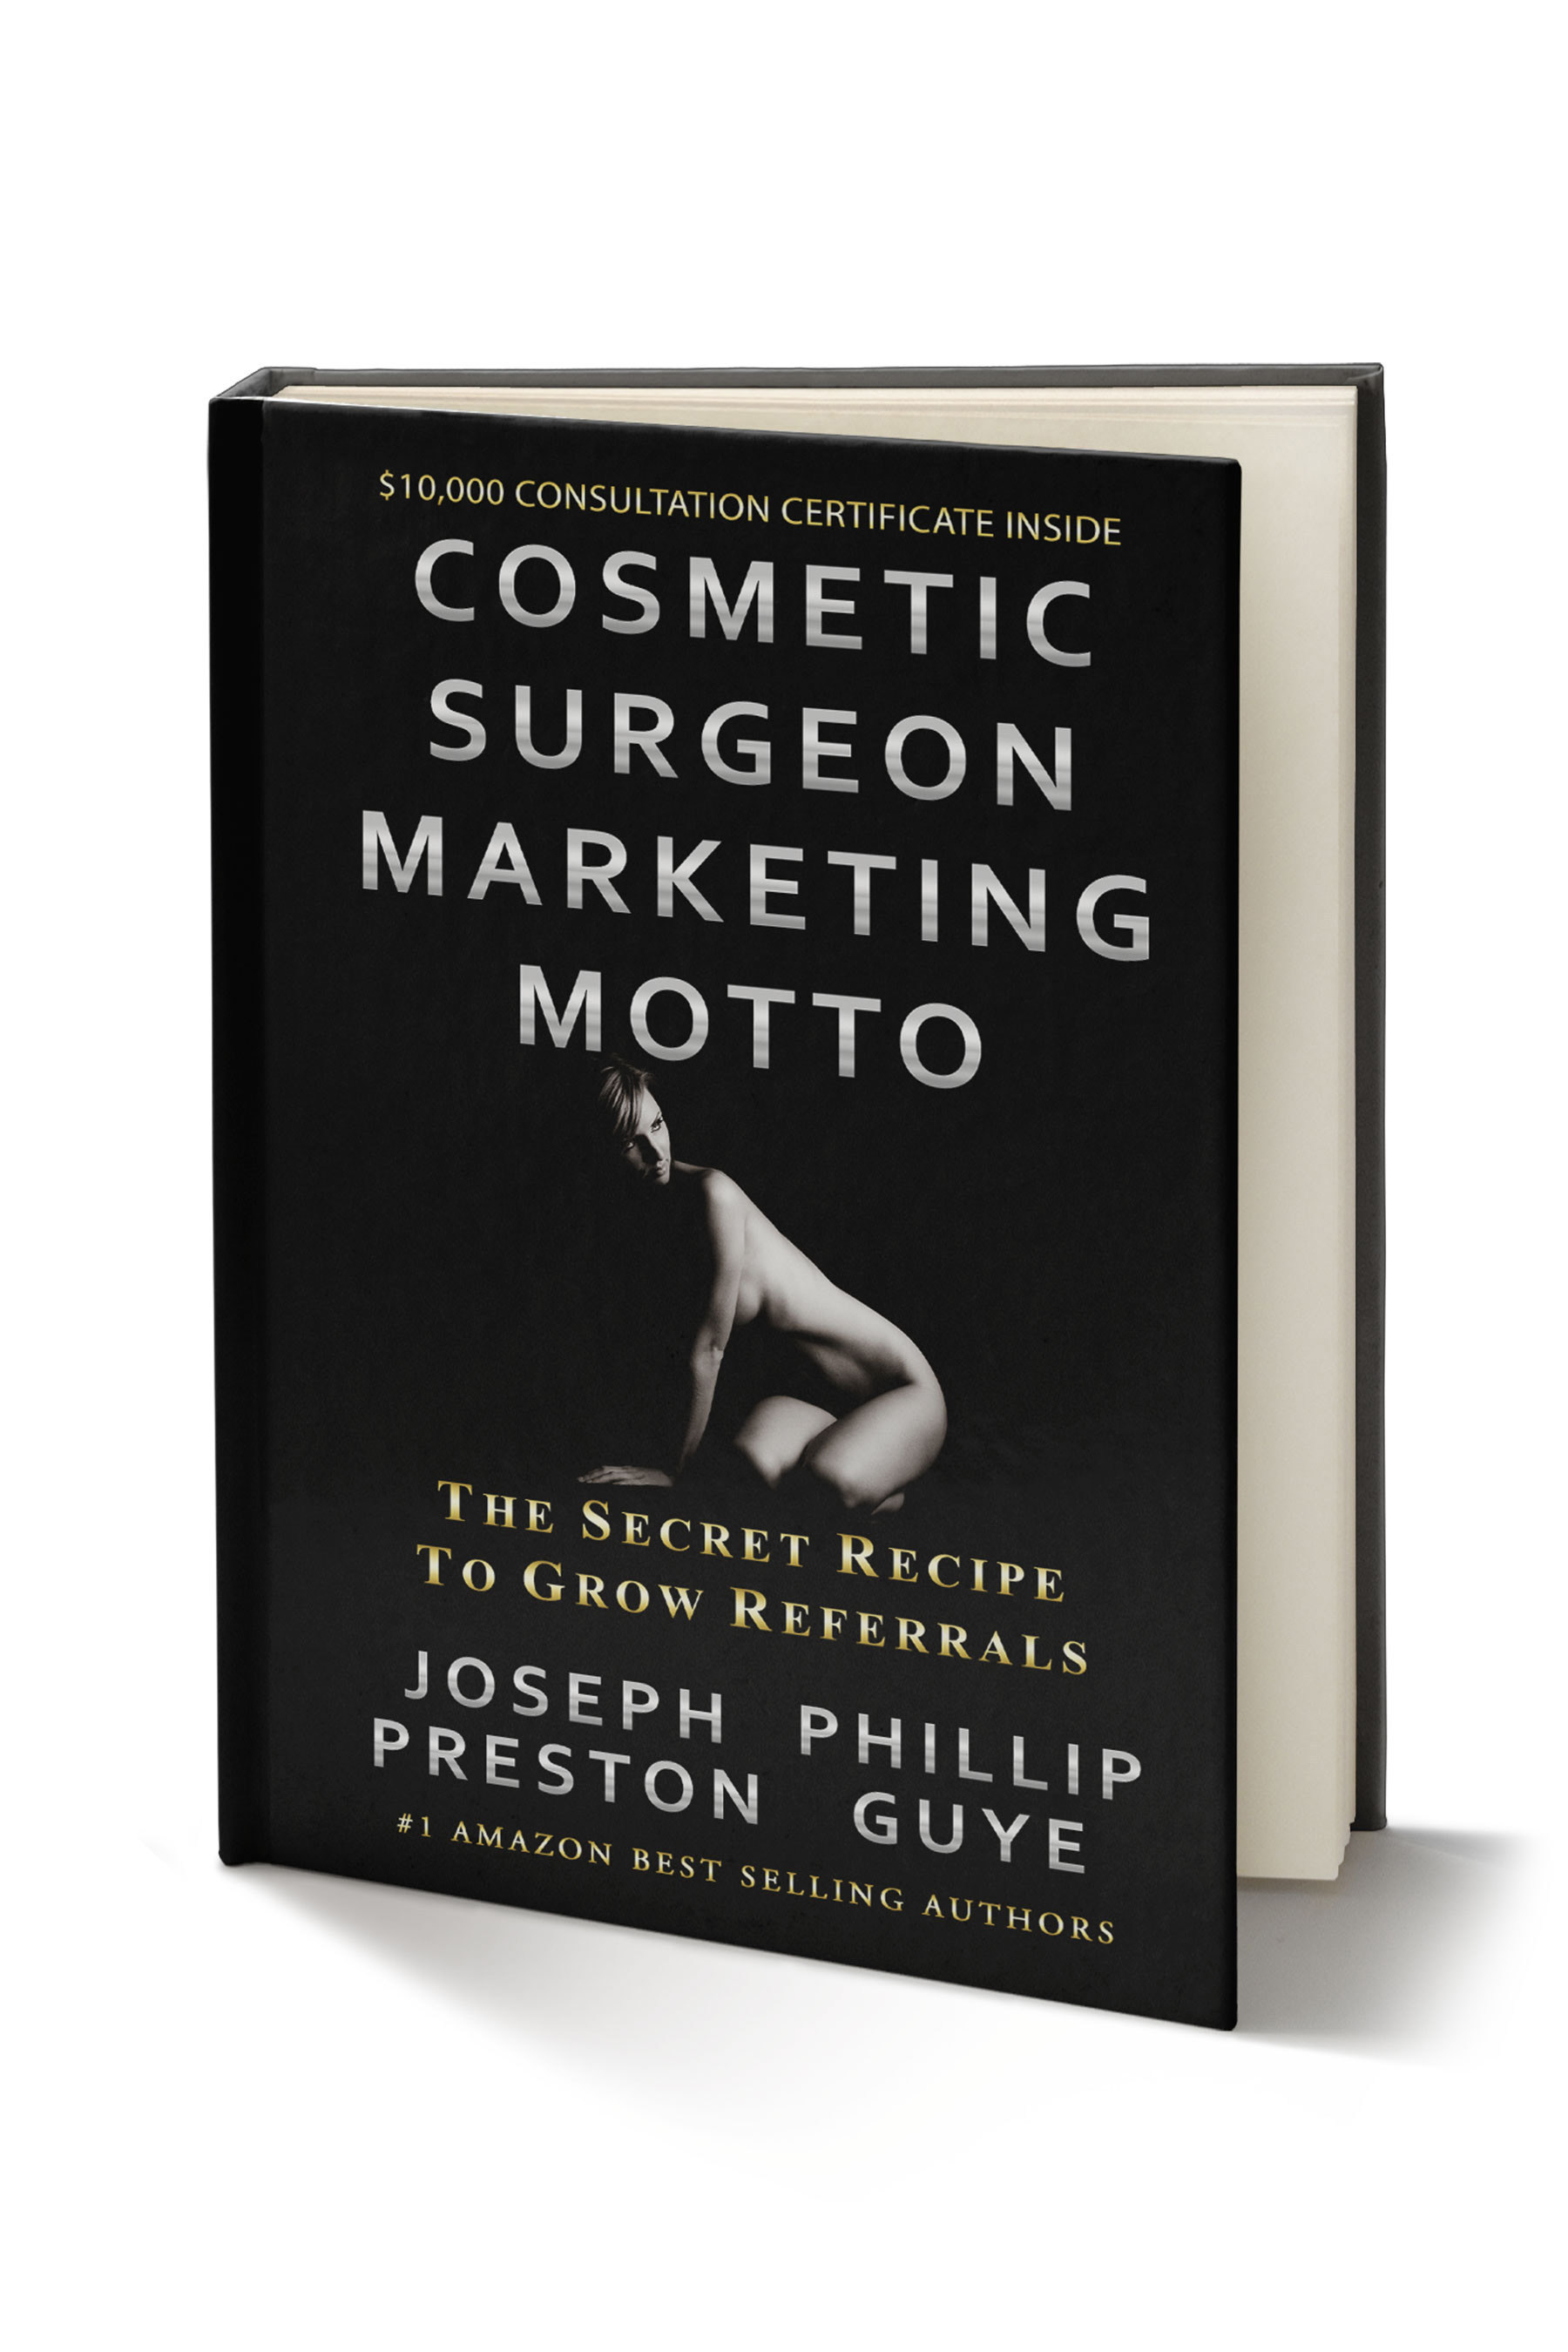 Doctor Book Publishing Advertises New Releases as Having 'World's Most Expensive New Title'